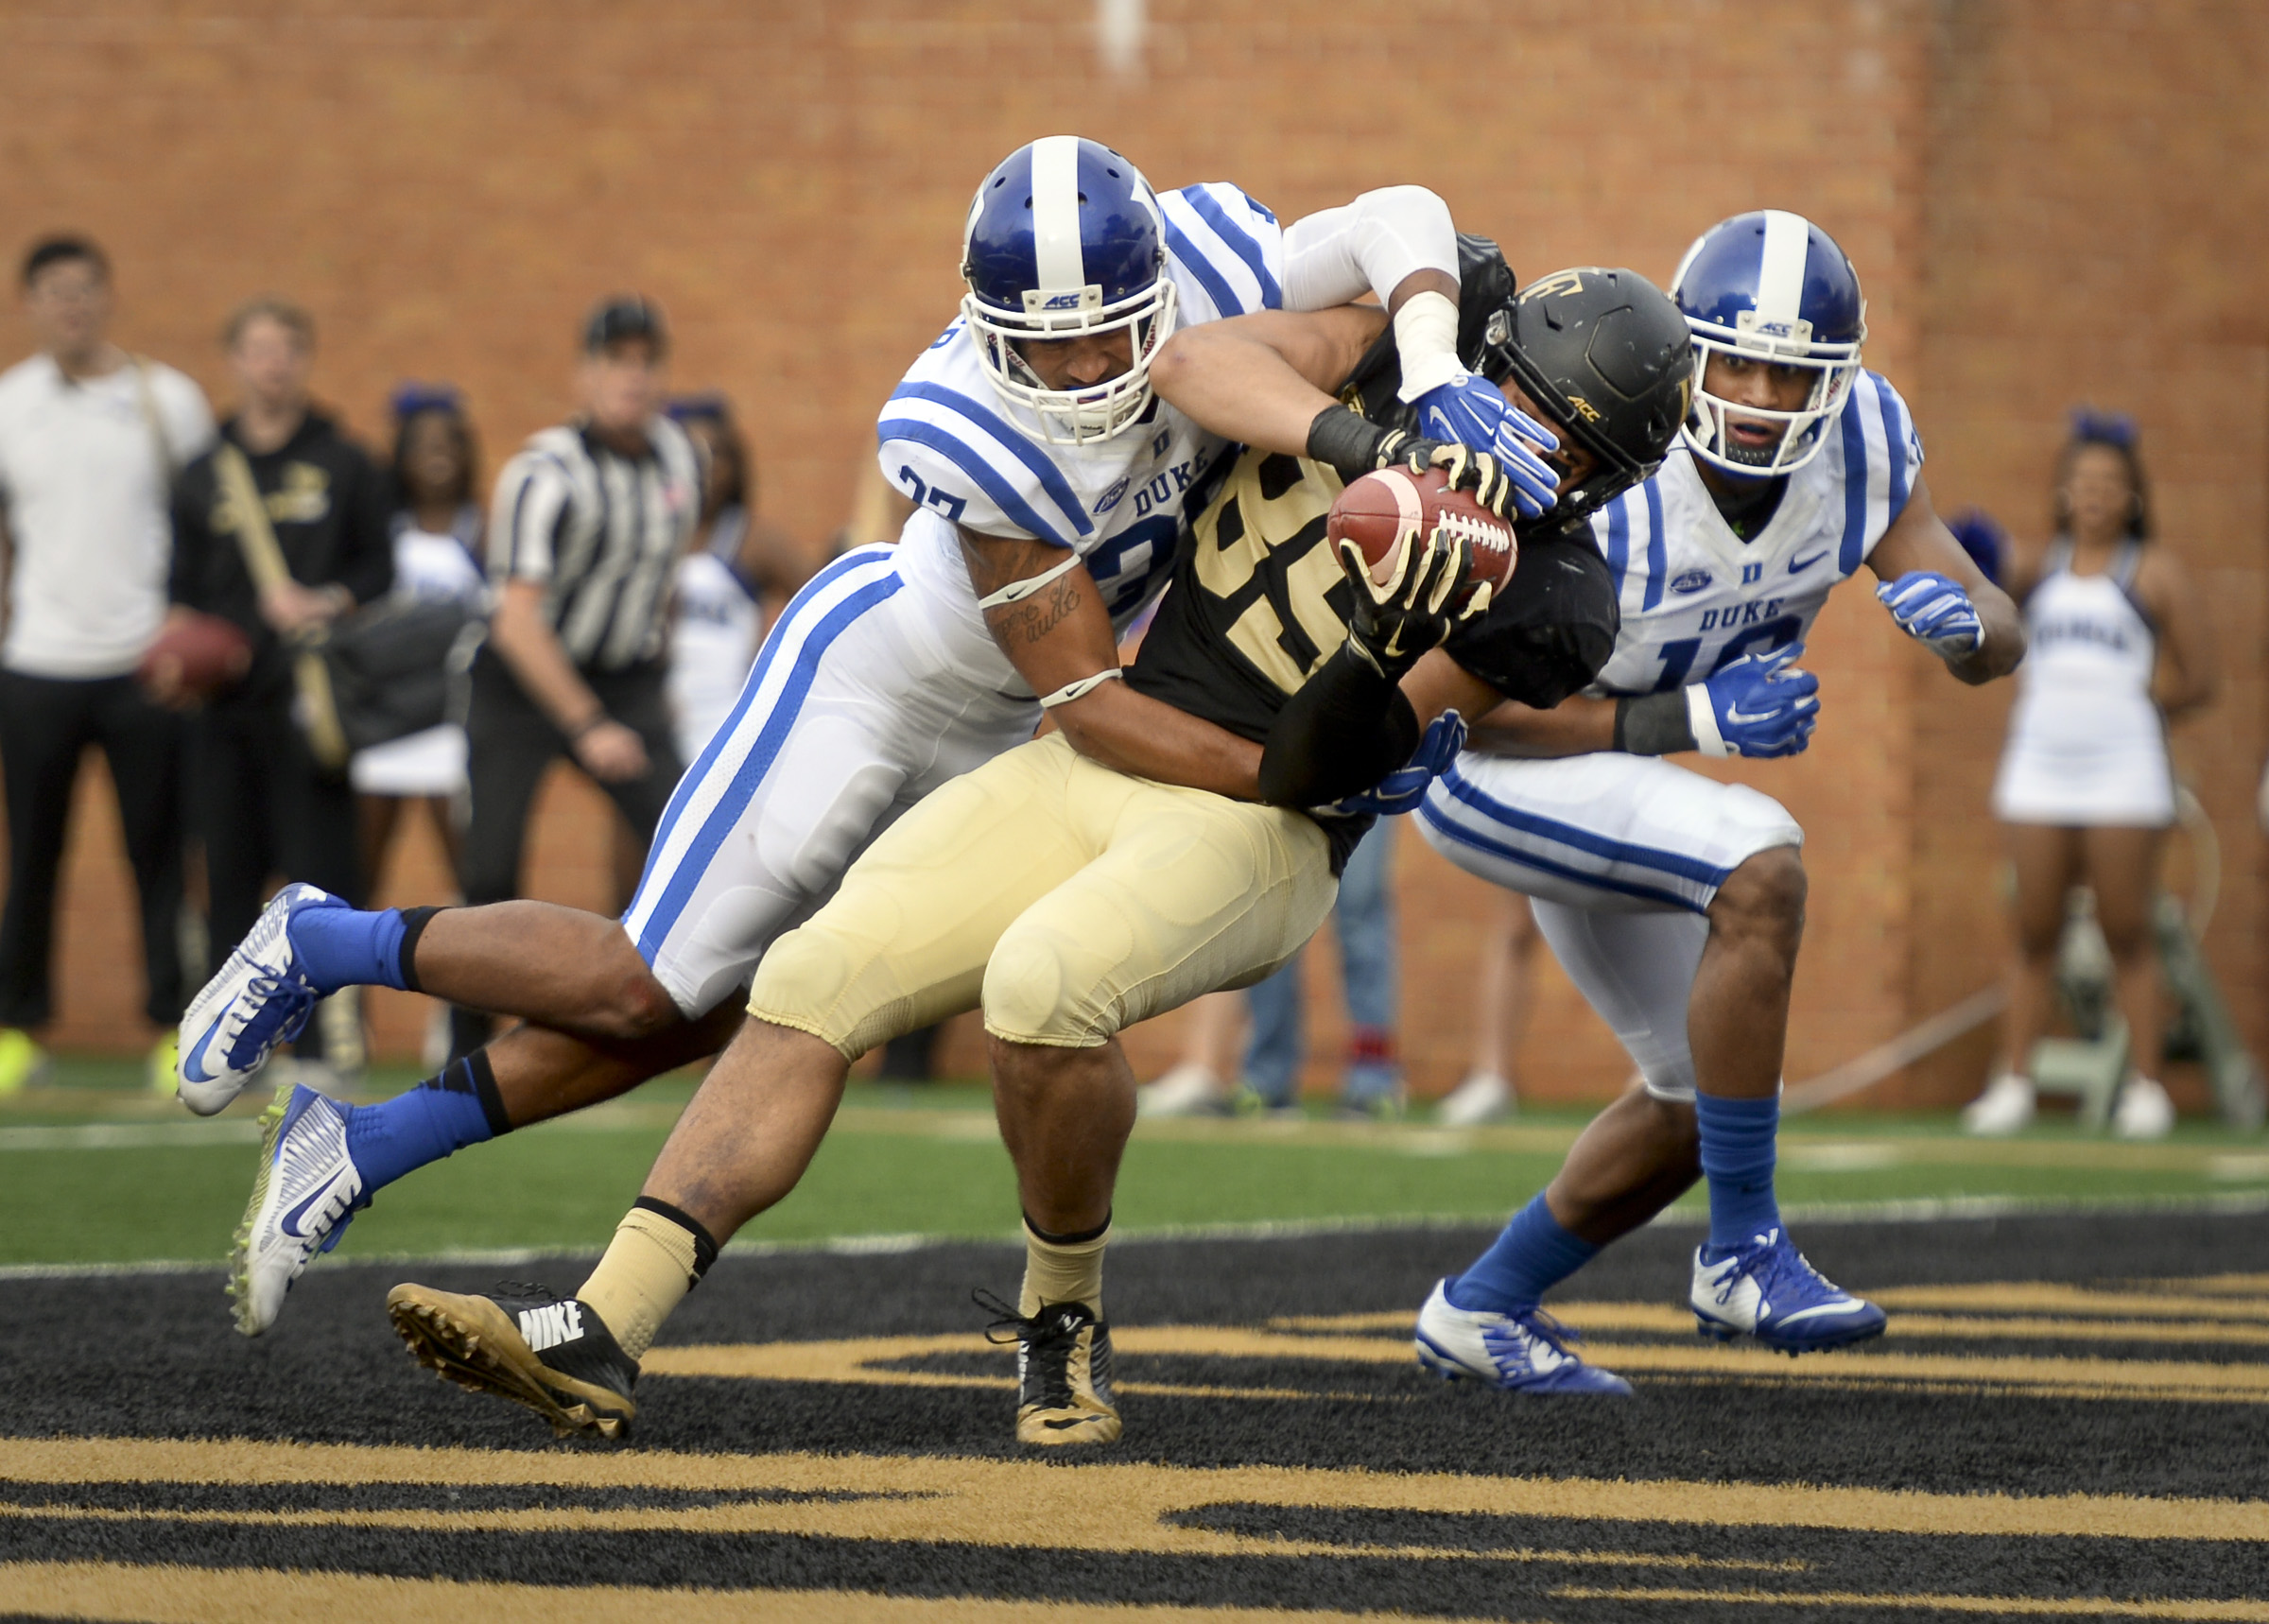 Wake Forest tight end Cam Serigne holds on to a touchdown pass as Duke's Phillip Carter, left, and Jeremy Cash, right, defend during during the second half of an NCAA college football game in Winston-Salem, N.C. Saturday, Nov. 28, 2015. (Lauren Carroll /T